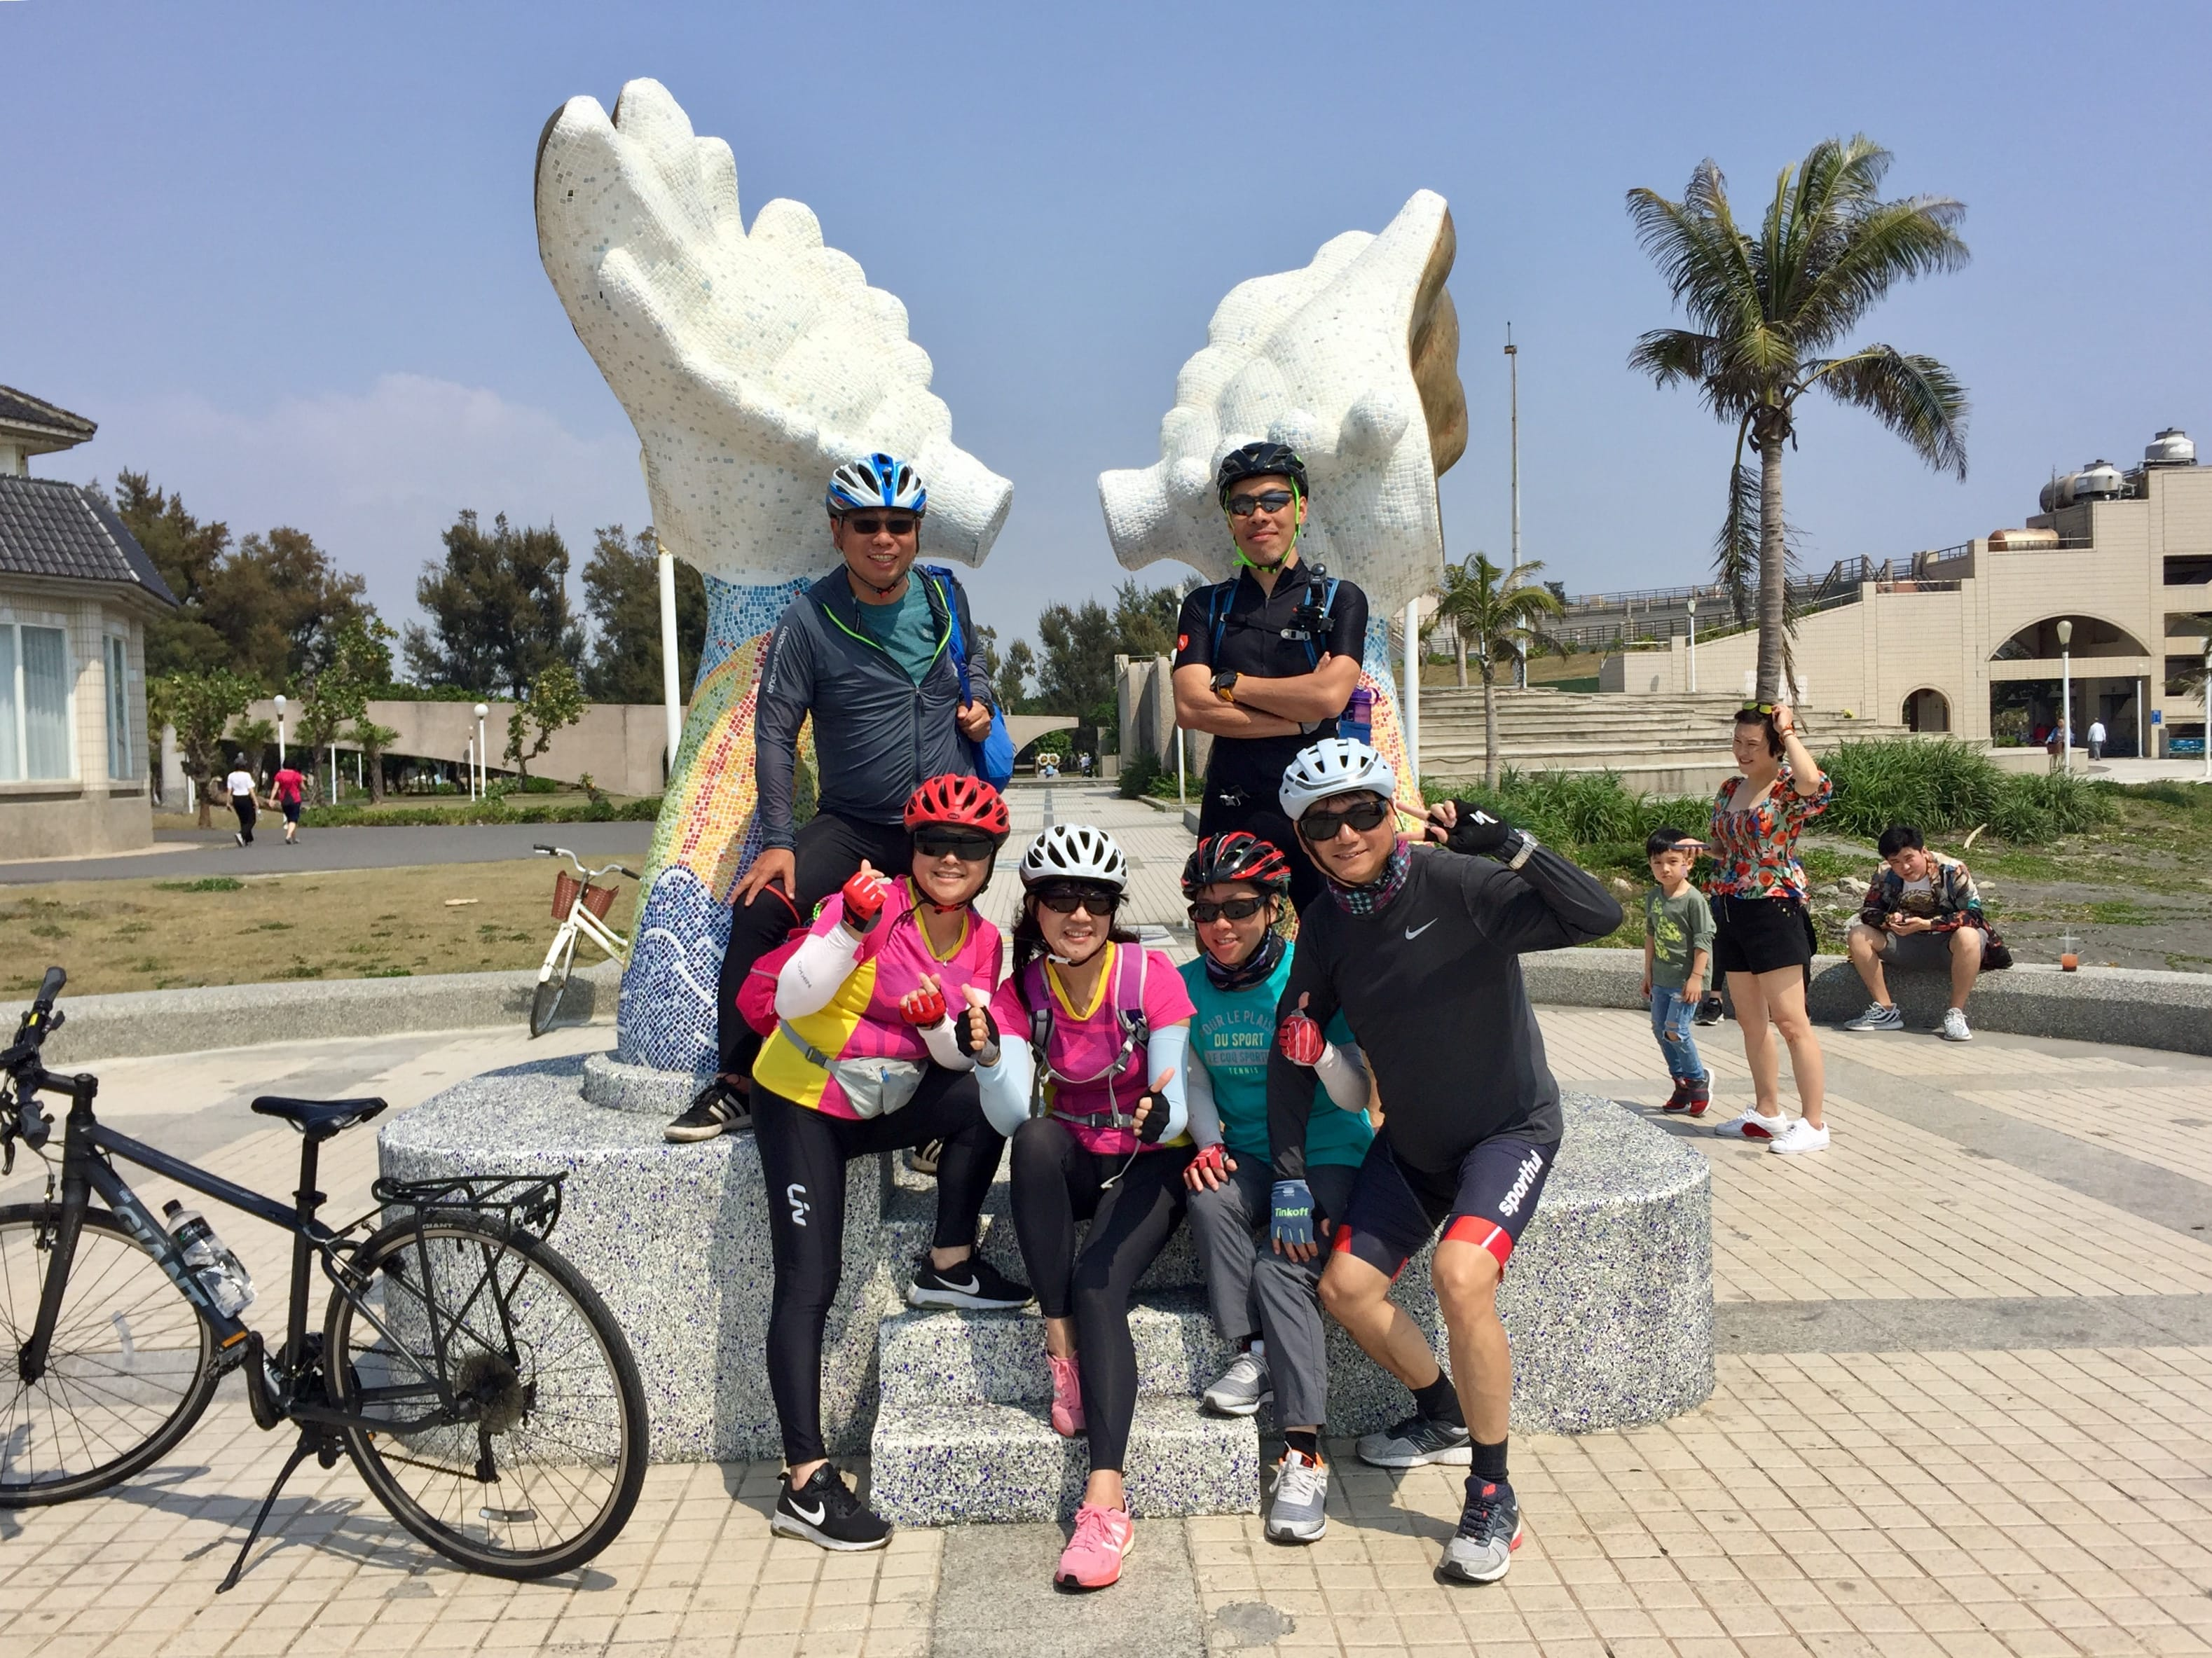 Buddies posed at the Double Whelk Statue